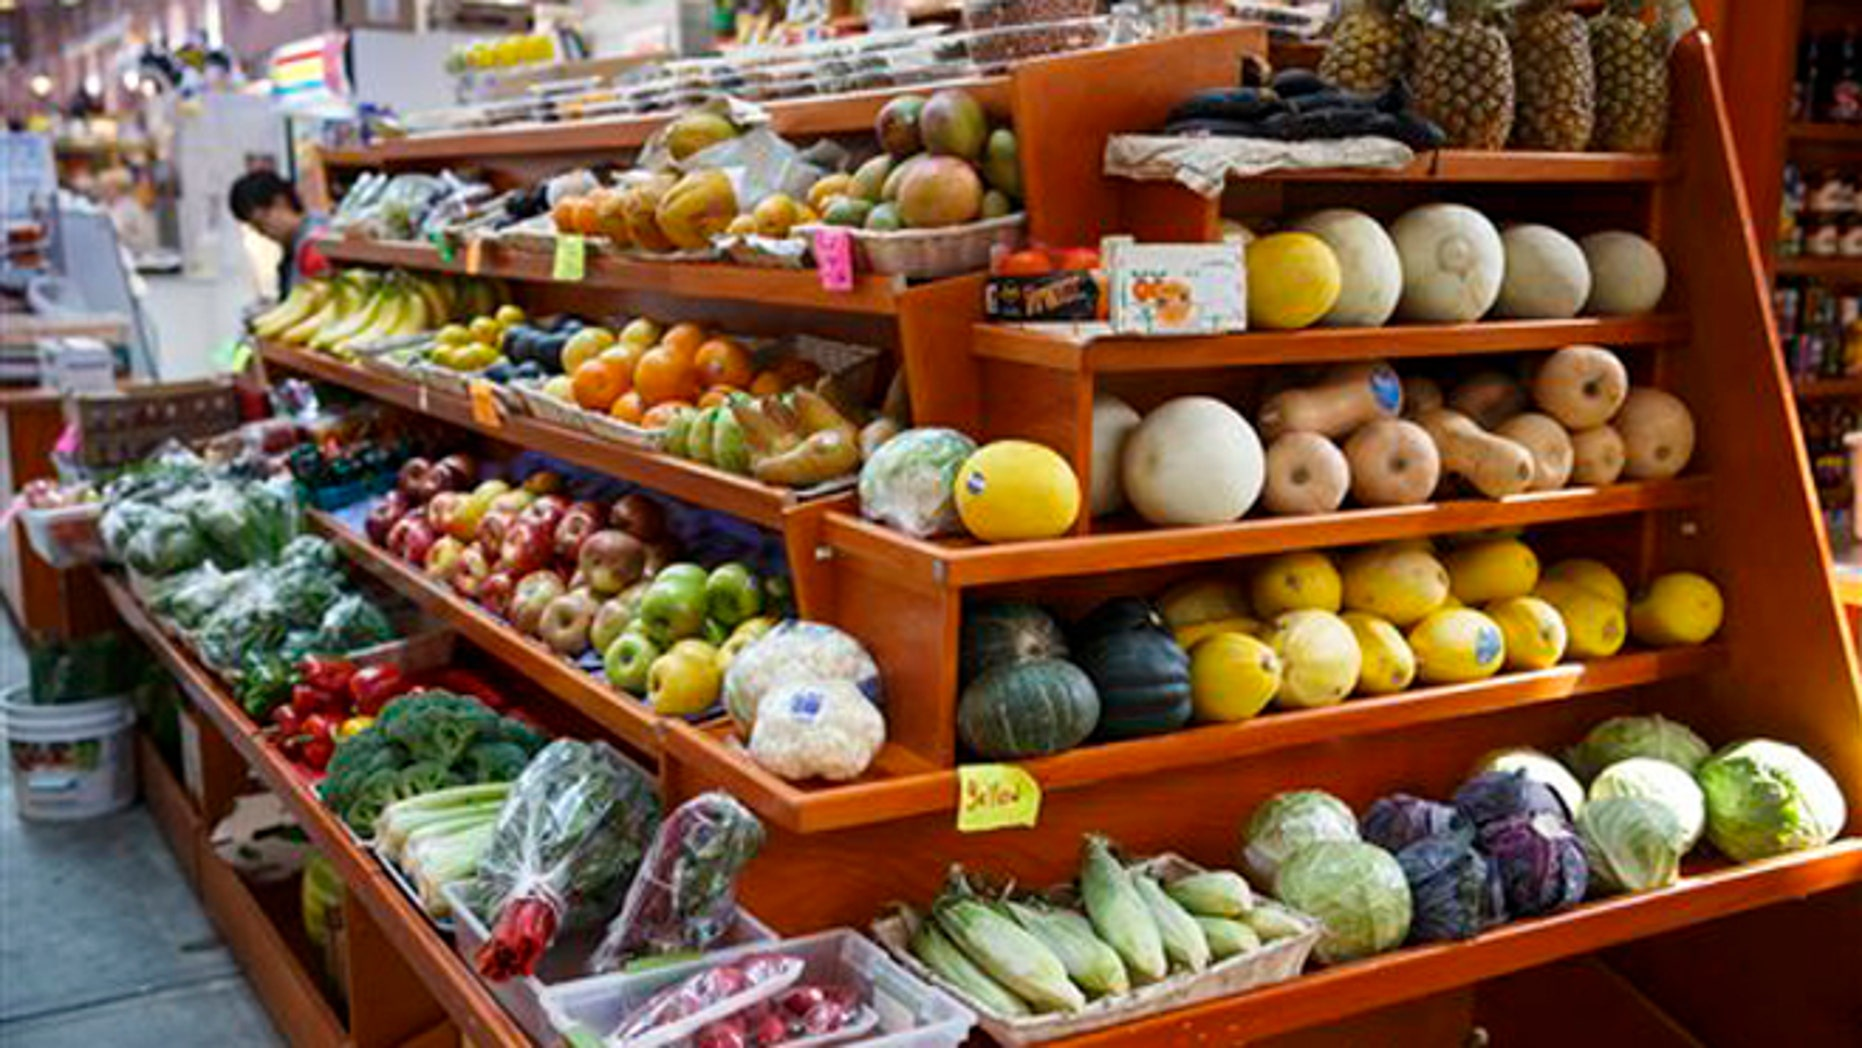 FOR RELEASE MONDAY, SEPT. 1, 2014, AT 4 P.M.- FILE - In this April 24, 2014 file photo, a variety of healthy fruits and vegetables are displayed for sale at a market in Washington. A 12-year study released Monday, Sept. 1, 2014, shows a steady improvement in American's eating habits, but food choices remain less than ideal. (AP Photo/J. Scott Applewhite, File)